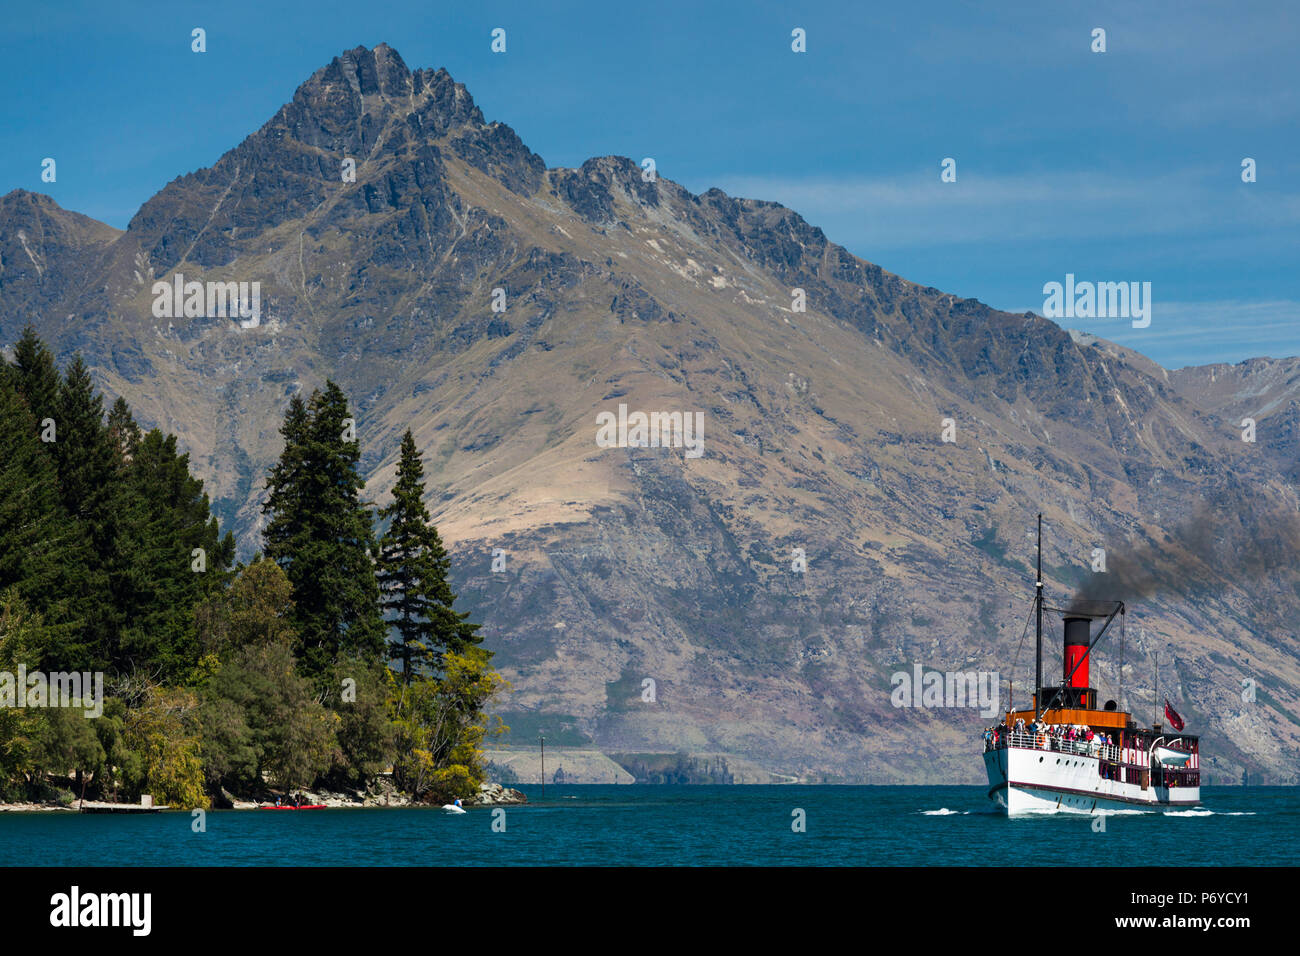 New Zealand, South Island, Otago, Queenstown, The Remarkables Mountains with the steamer TSS Earnslaw - Stock Image